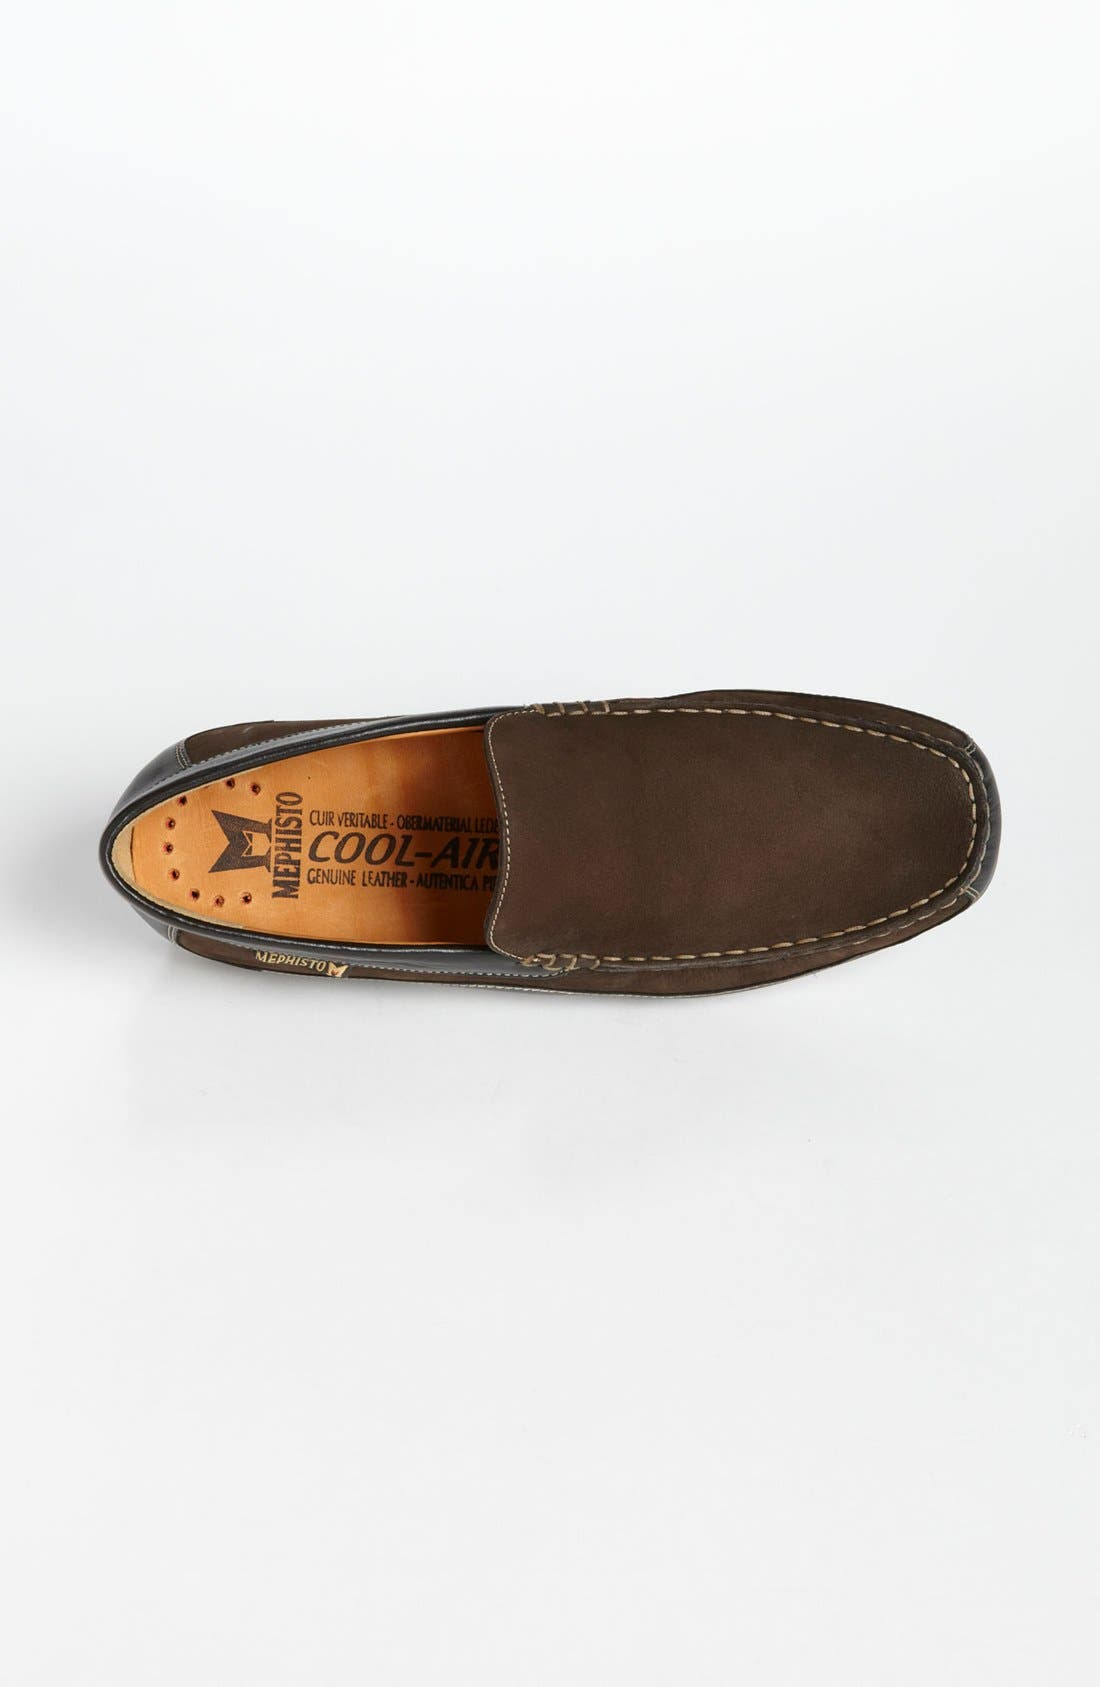 'Baduard' Loafer,                             Alternate thumbnail 3, color,                             Brown Nubuck/ Brown Suede